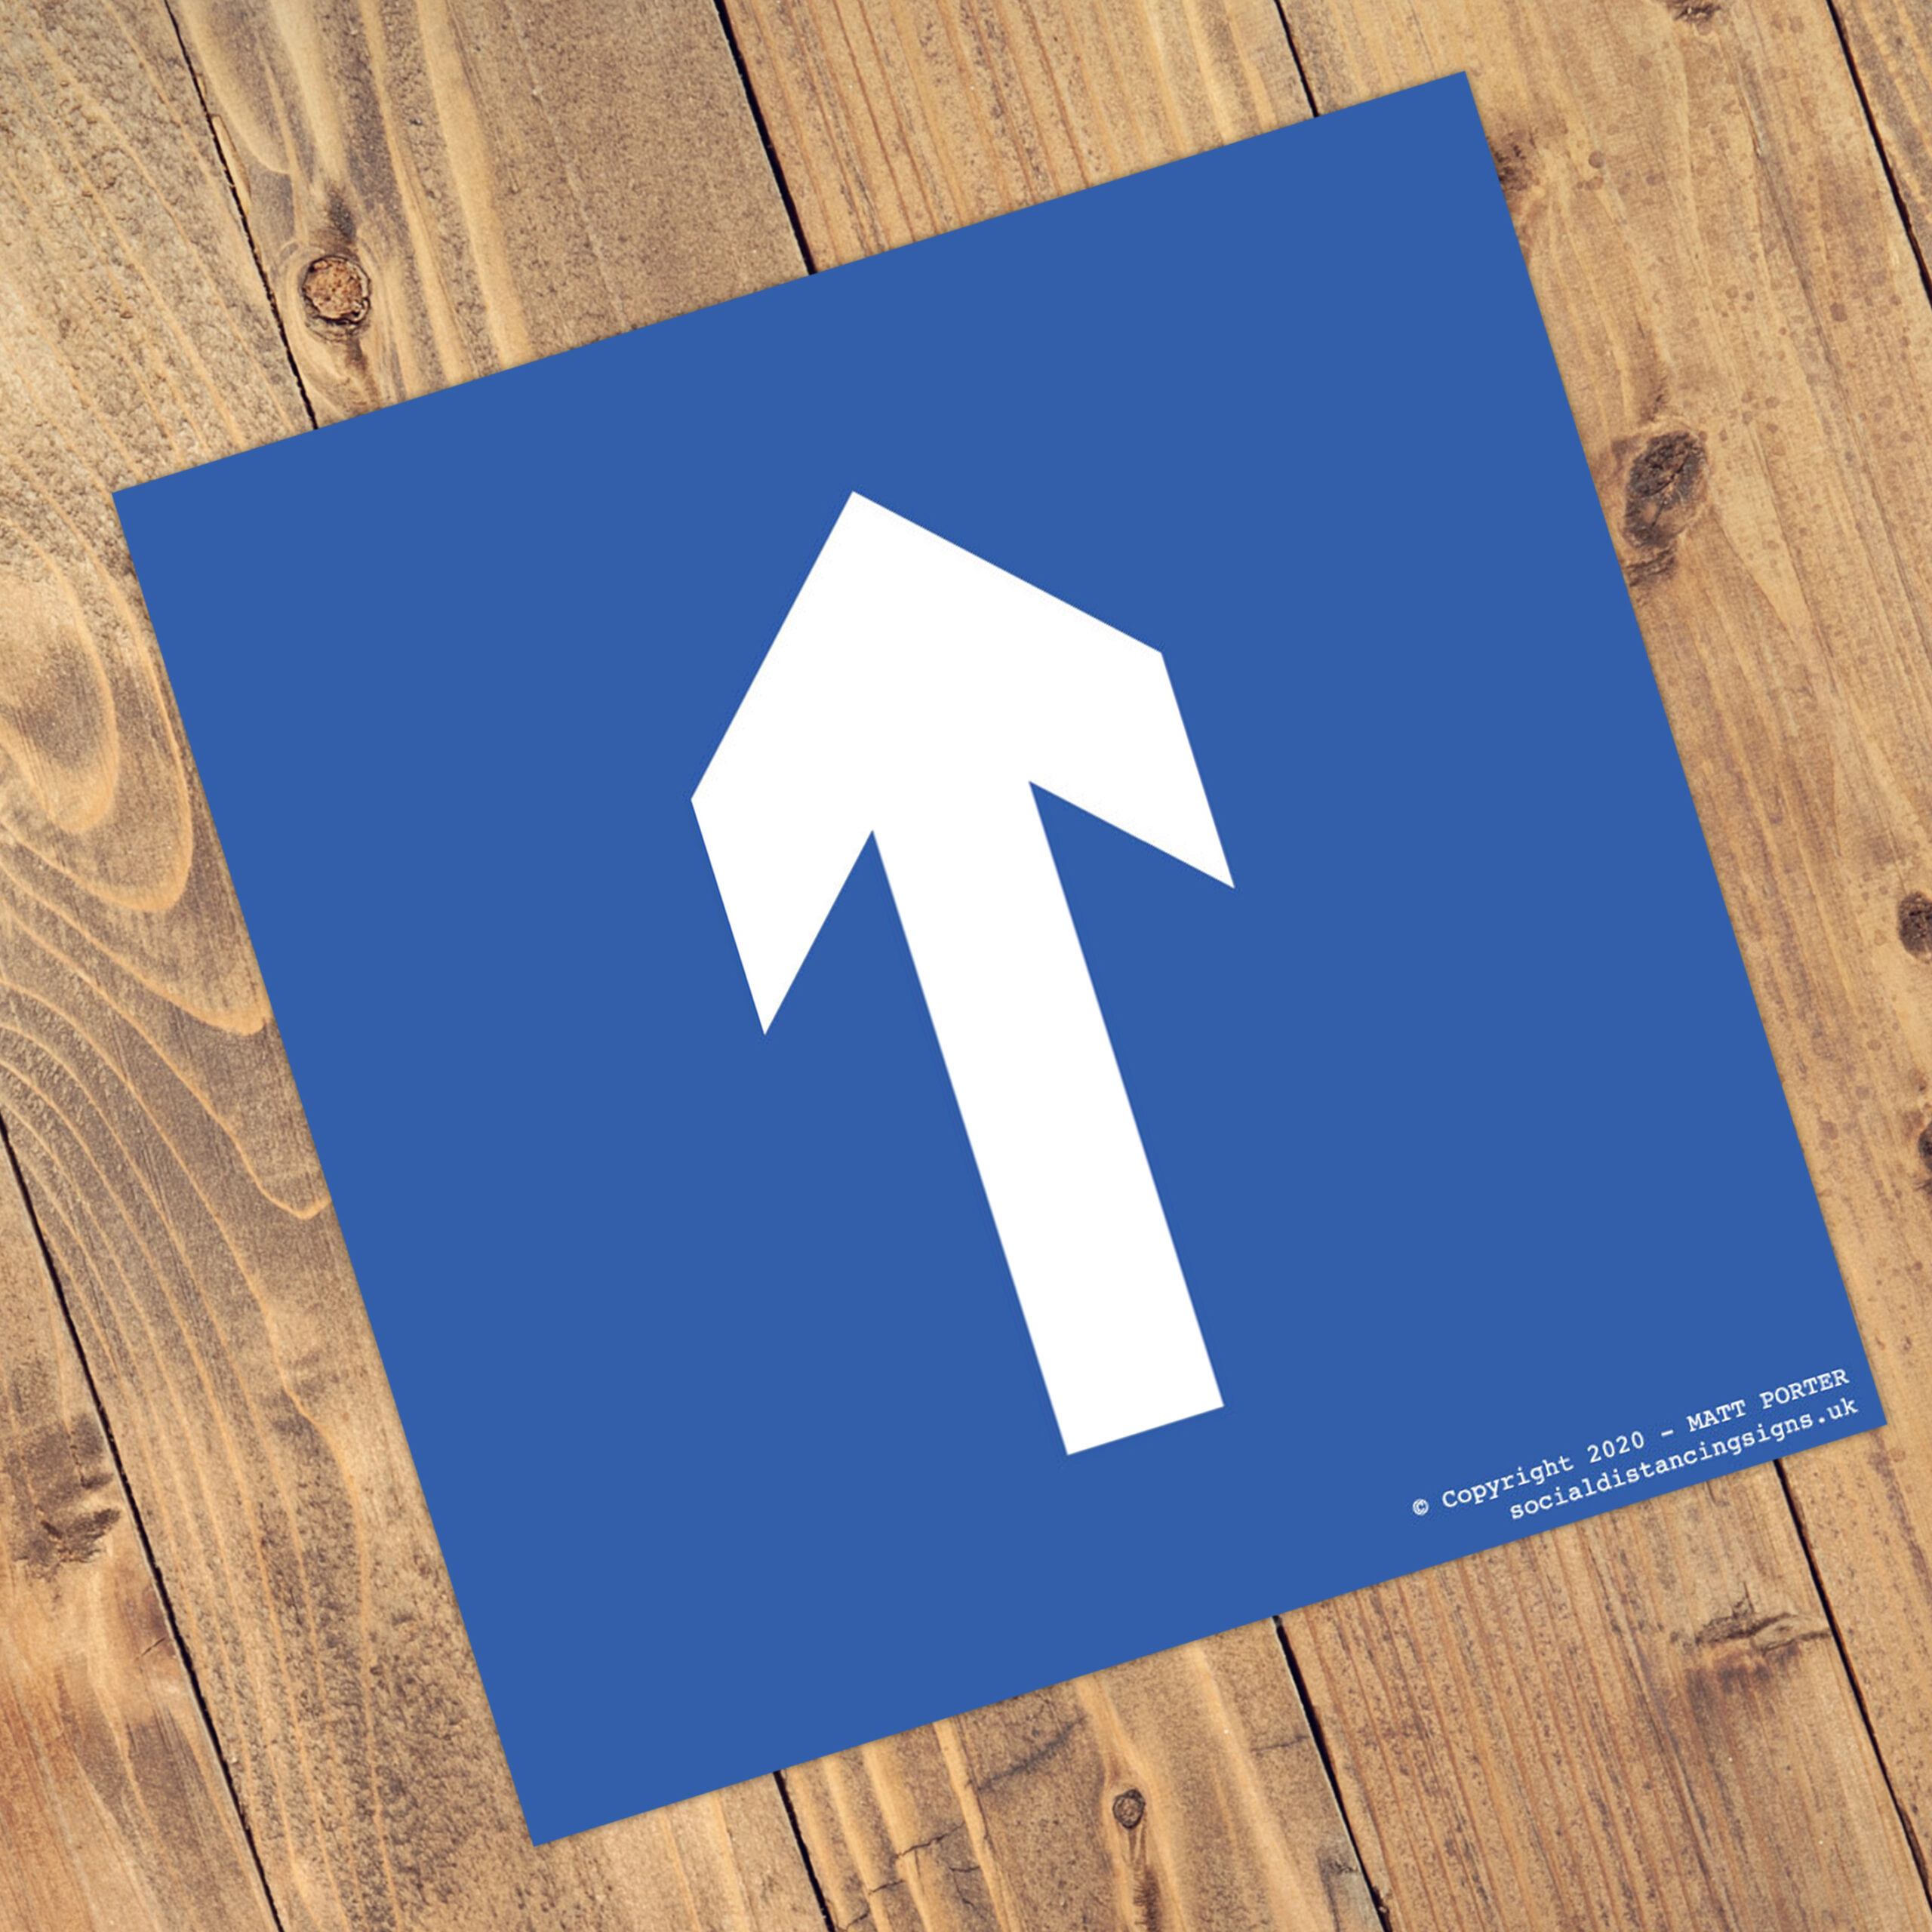 "Social Distancing Square Anti-Slip Floor ""Blue"" Arrow Stickers (300mm x 300mm) - 10 Pack"